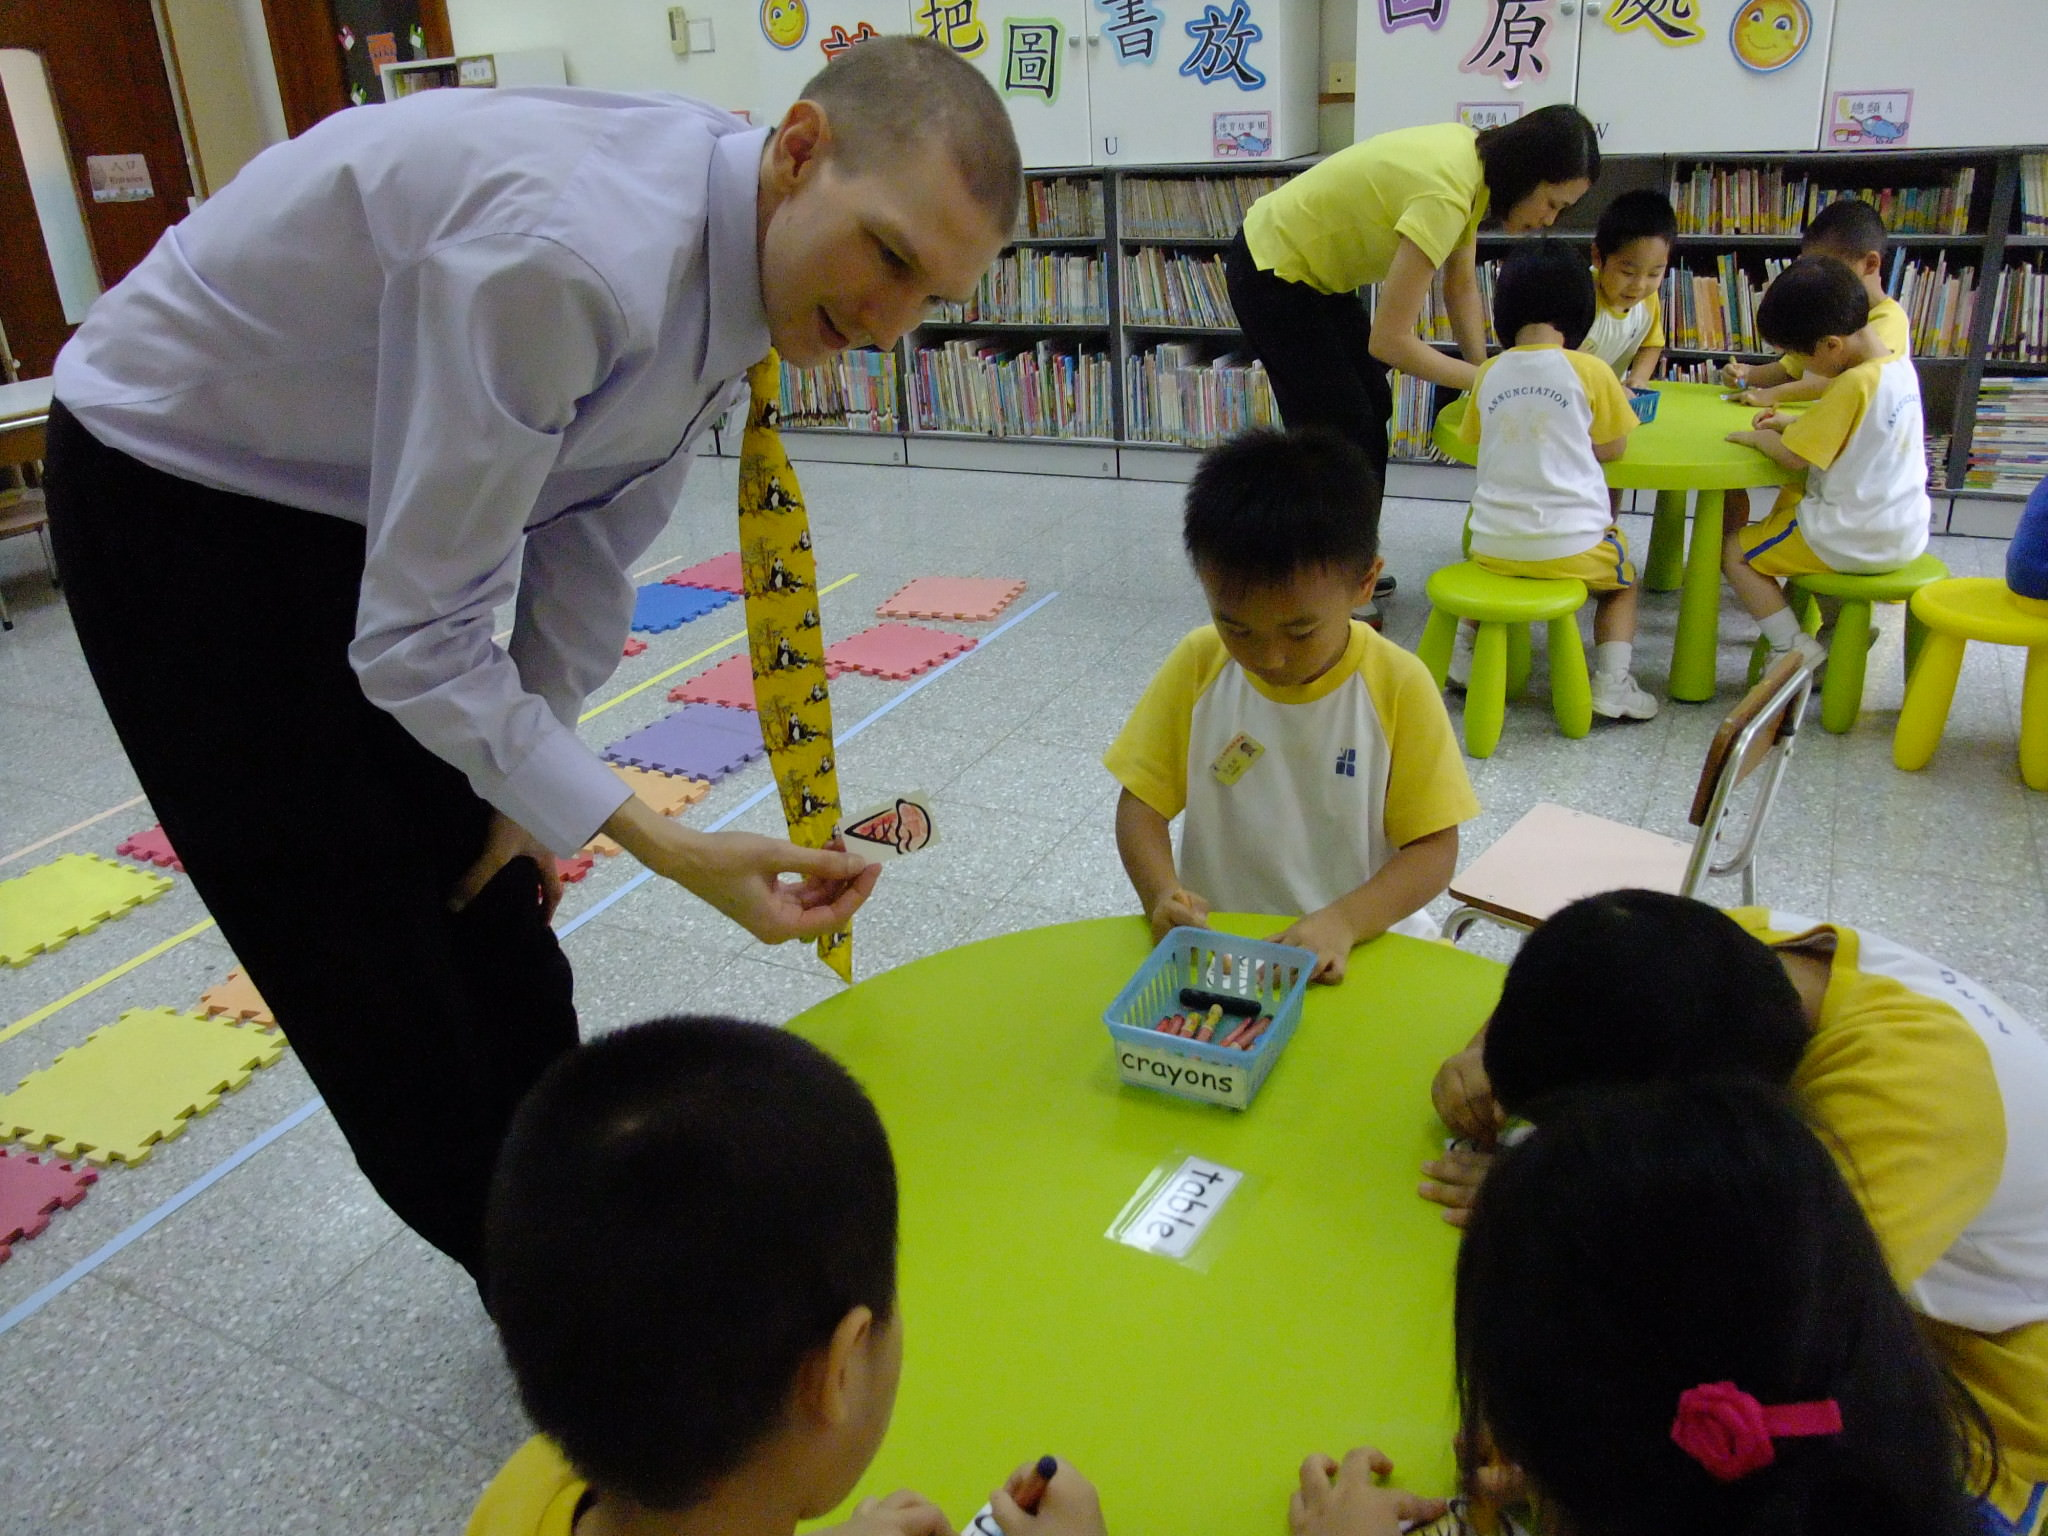 teaching in hong kong Teach english in hong kong through reach to teach recruiting te aching english in hong kong is the perfect opportunity for you if you're looking to immerse yourself in a culture that blends eastern and western ideals beautifully.